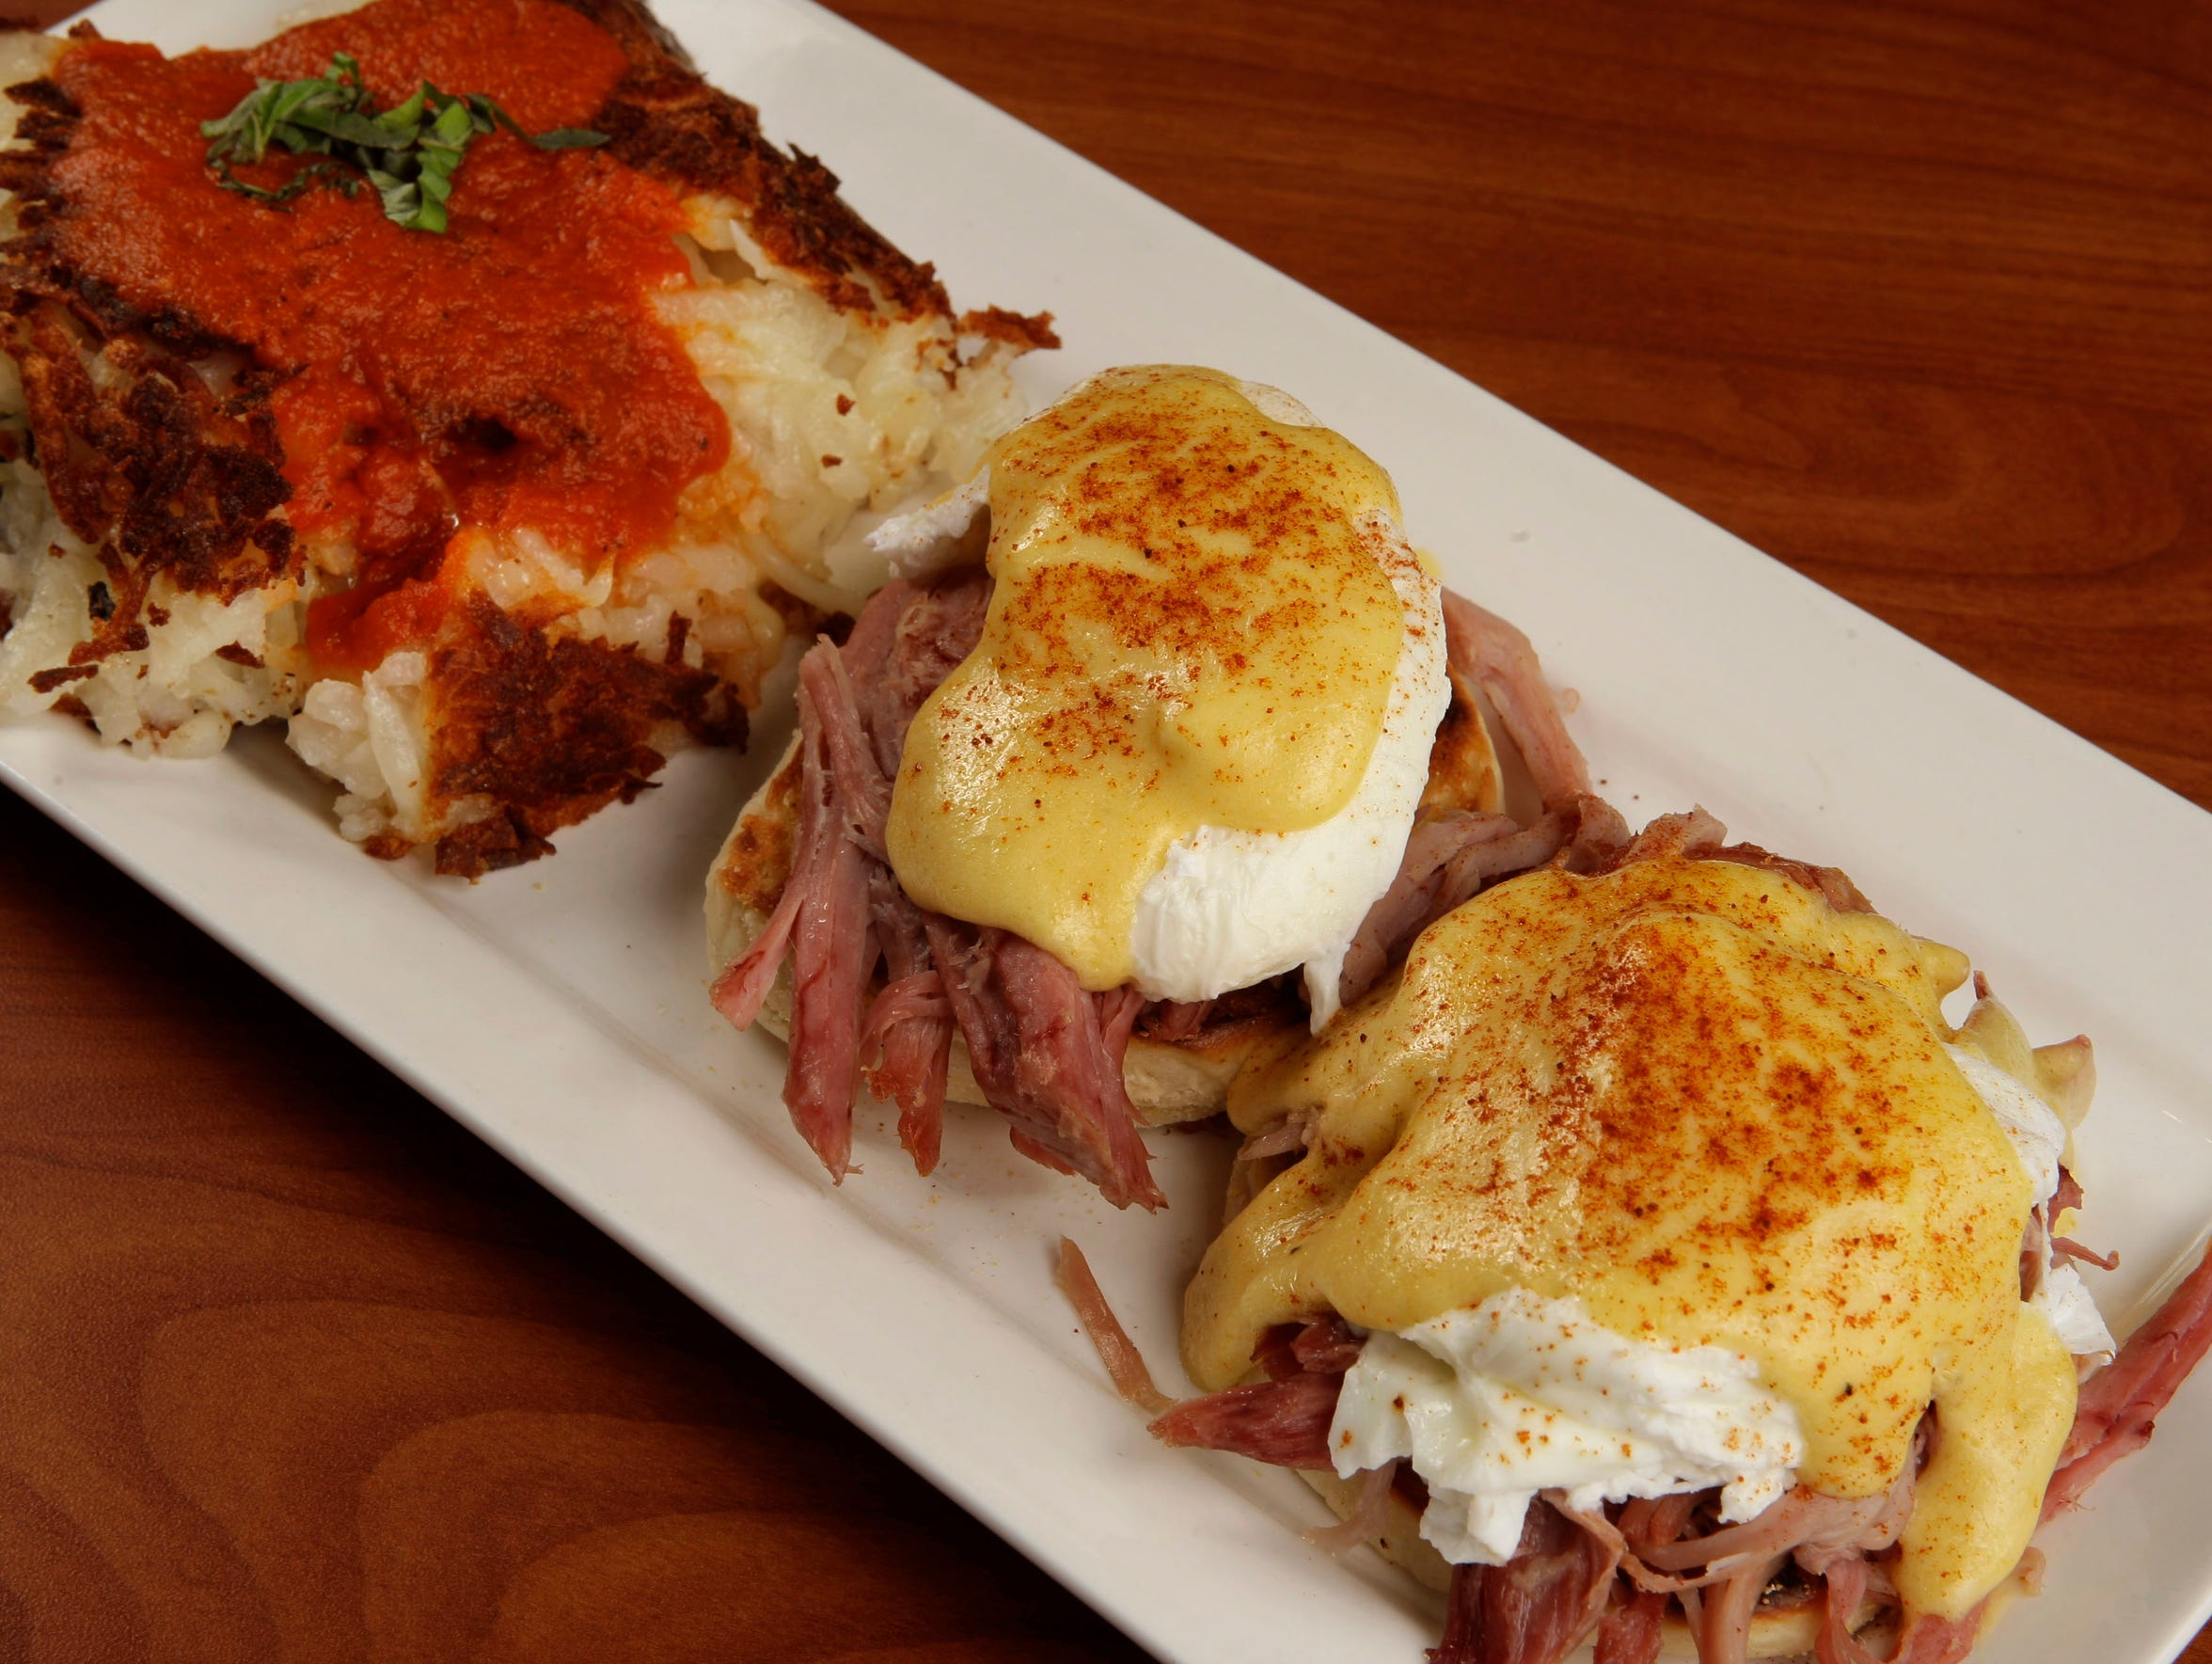 The Blue's Classic Benedict features pulled ham and